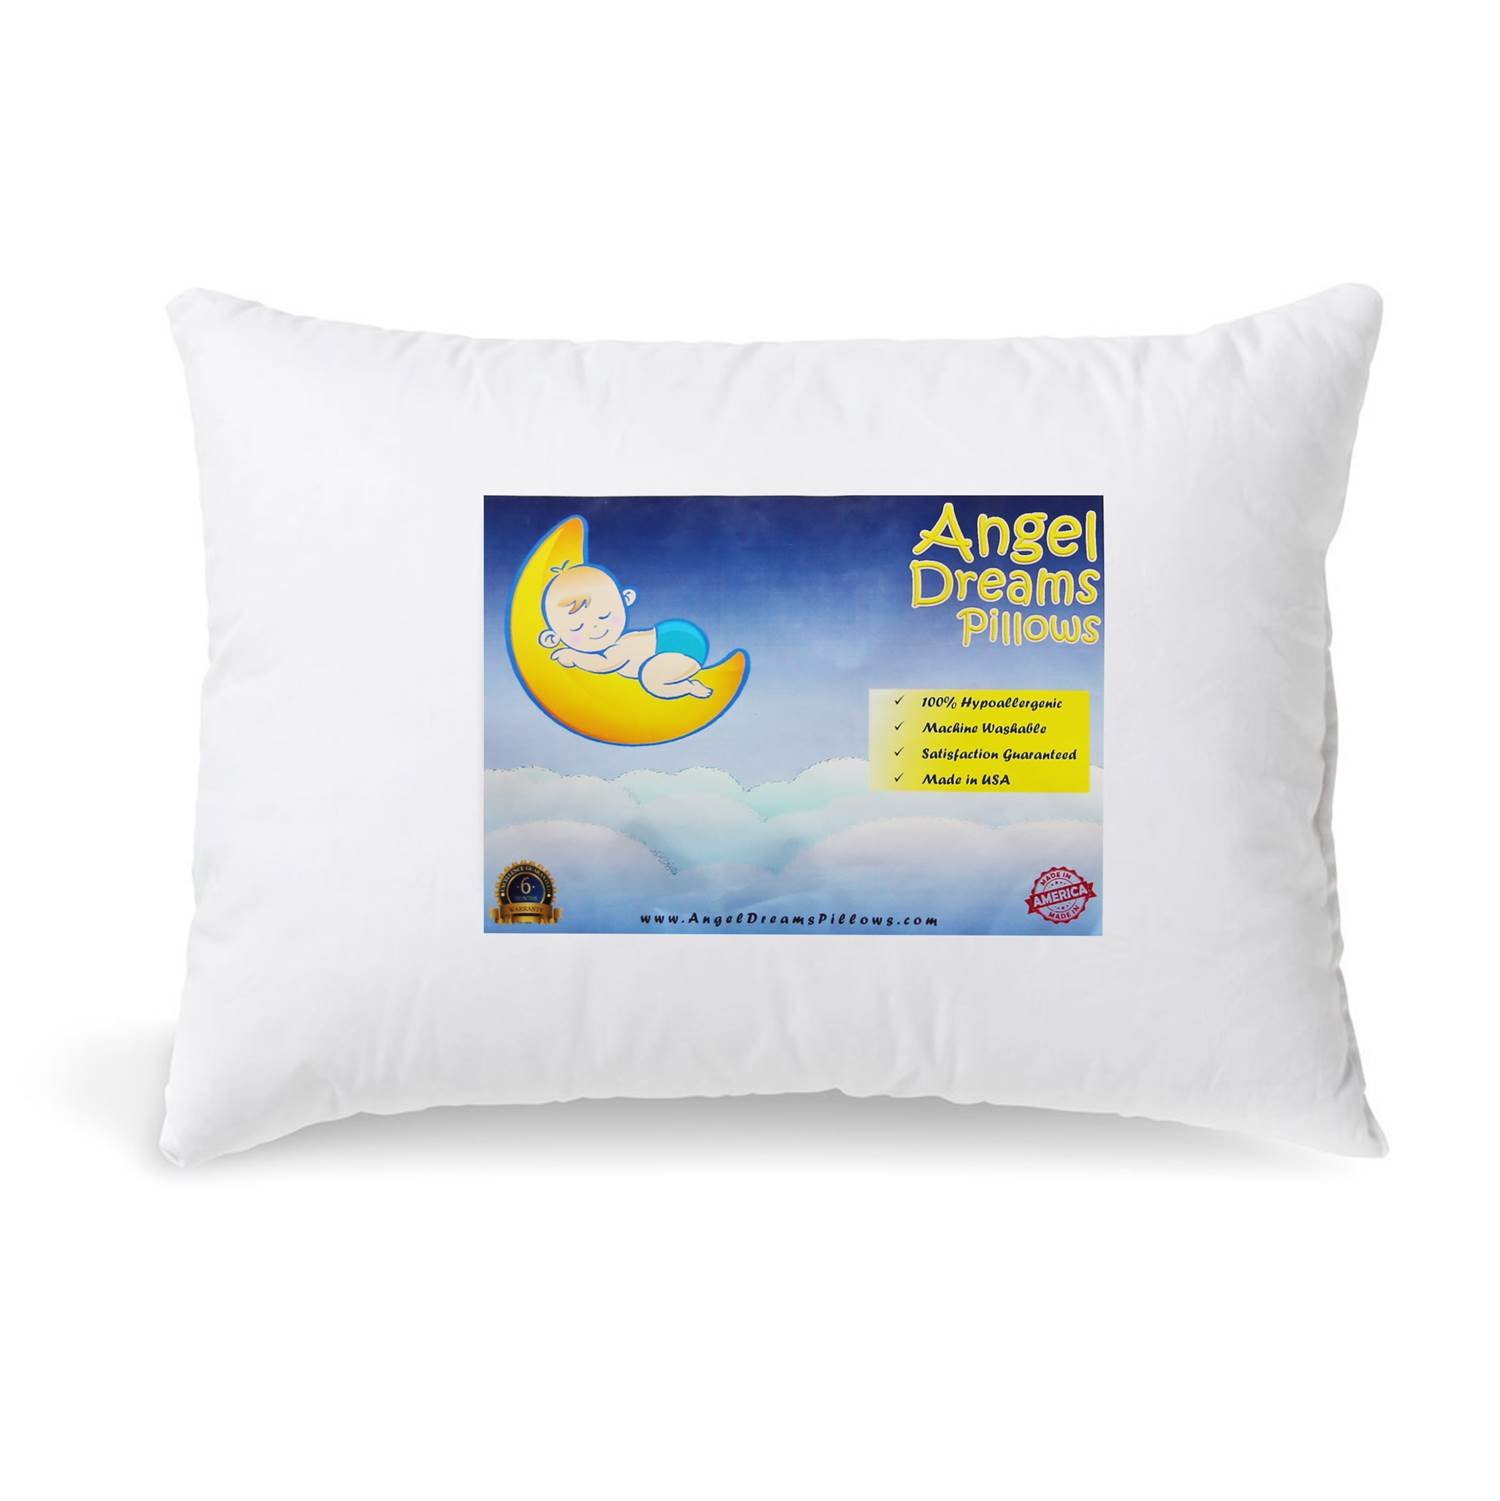 Toddler Pillow 13x18 Hypoallergenic - MADE IN USA